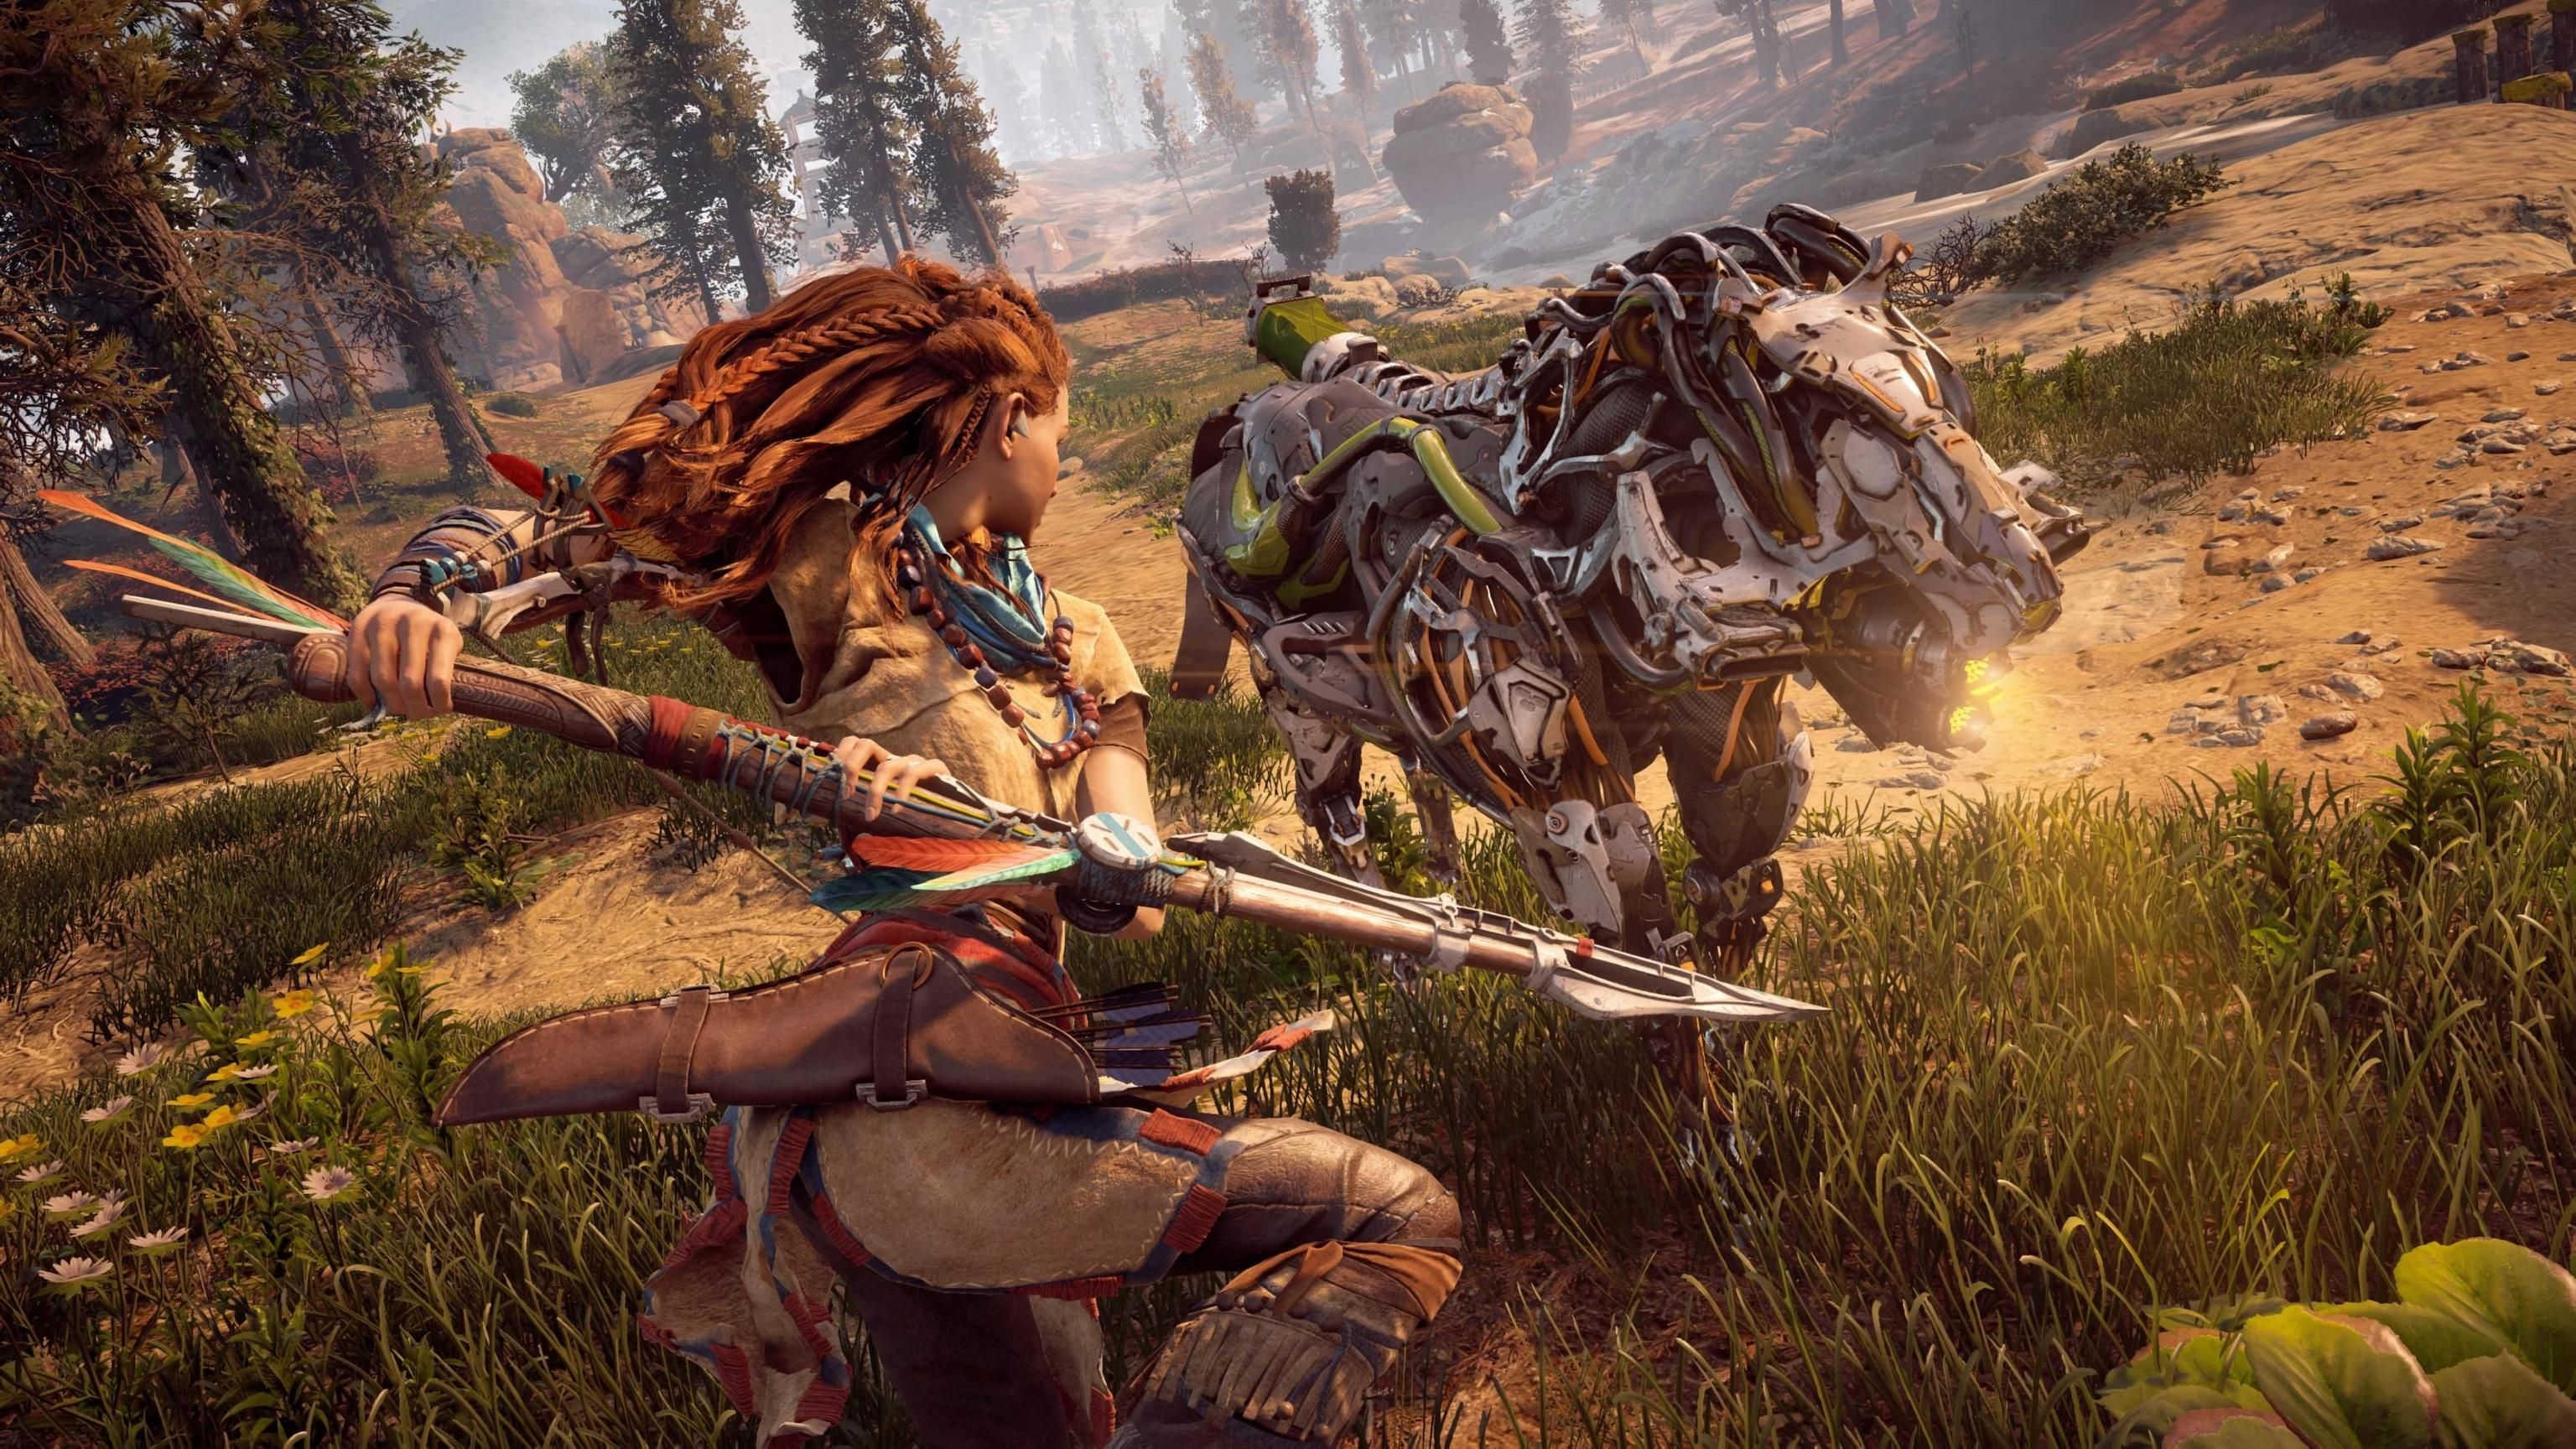 Screenshots Horizon Zero Dawn 1080p Ps4 Pro Screenshots Playstation4 Ps4 Sony Vid Horizon Zero Dawn Wallpaper Horizon Zero Dawn Horizon Zero Dawn Cosplay